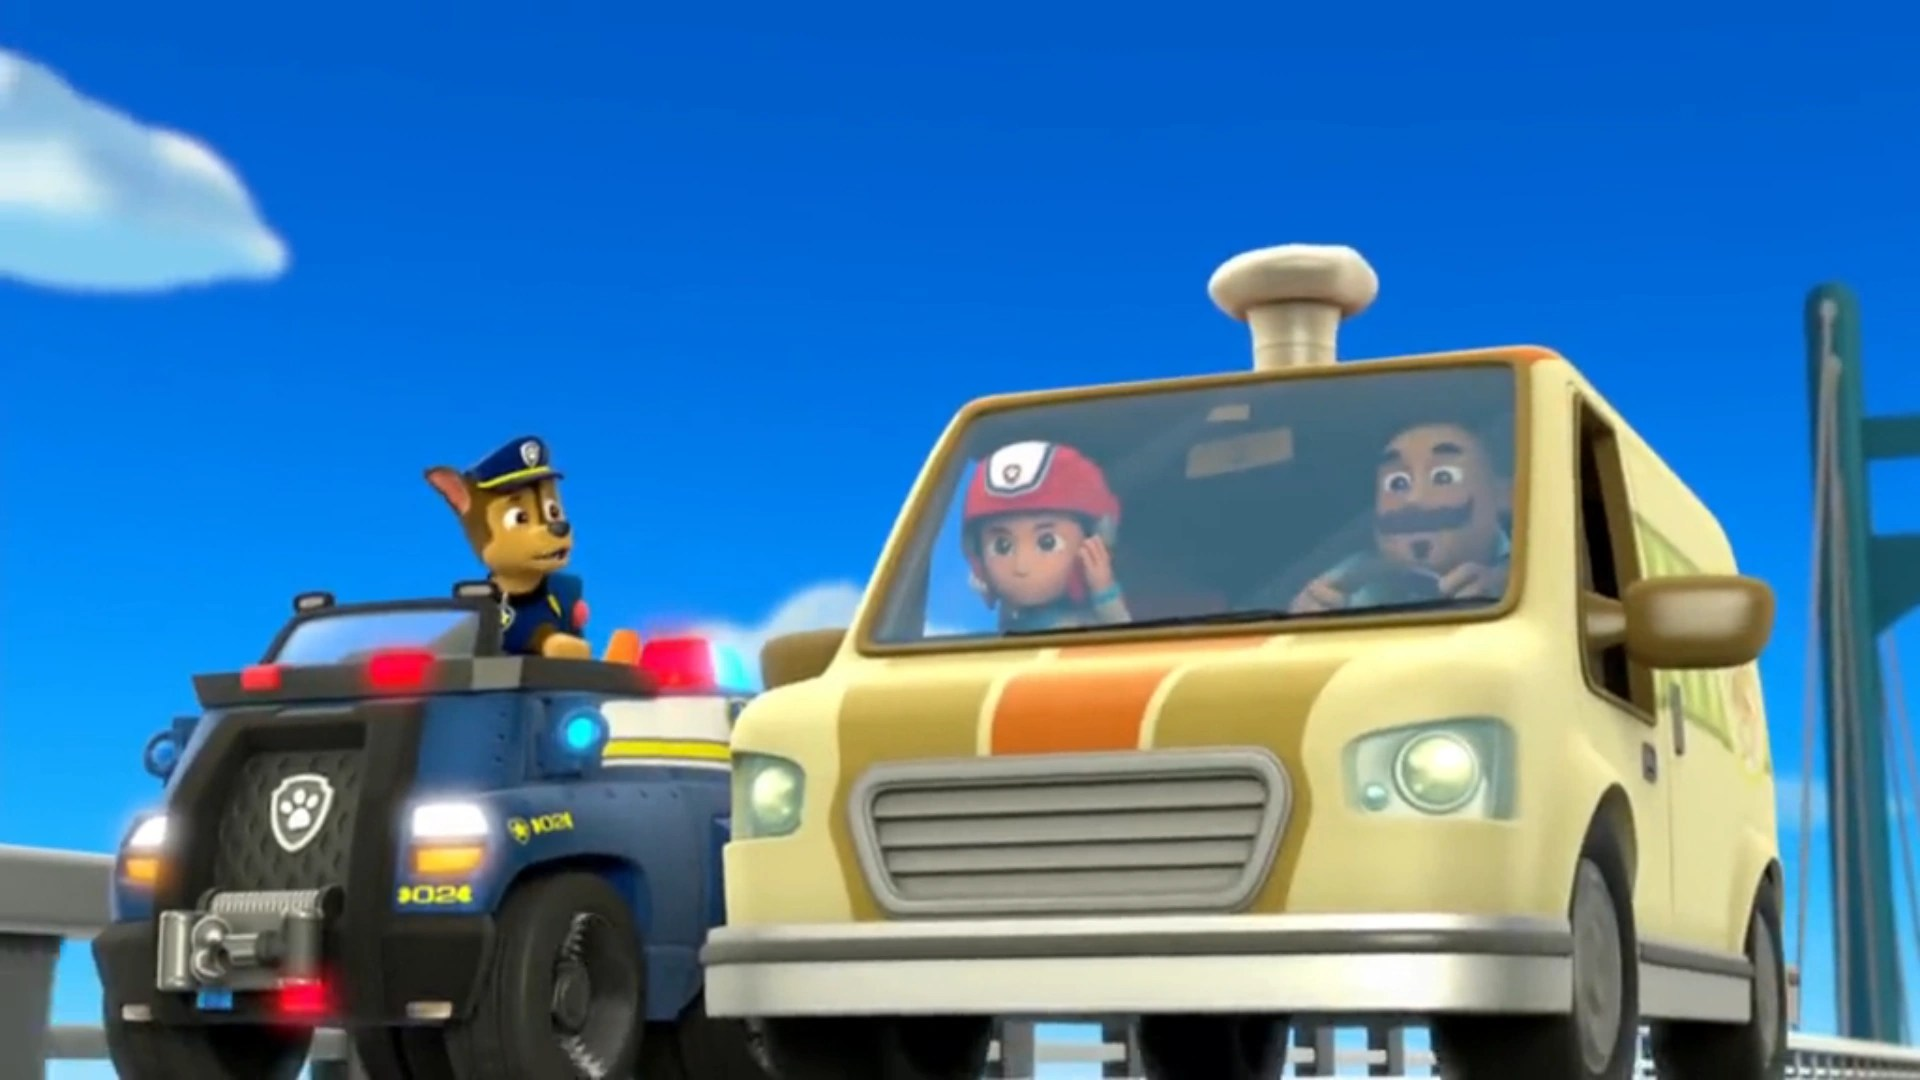 Le Meilleur Image Ryder And Mr Porter In Van Png Paw Patrol Wiki Ce Mois Ci